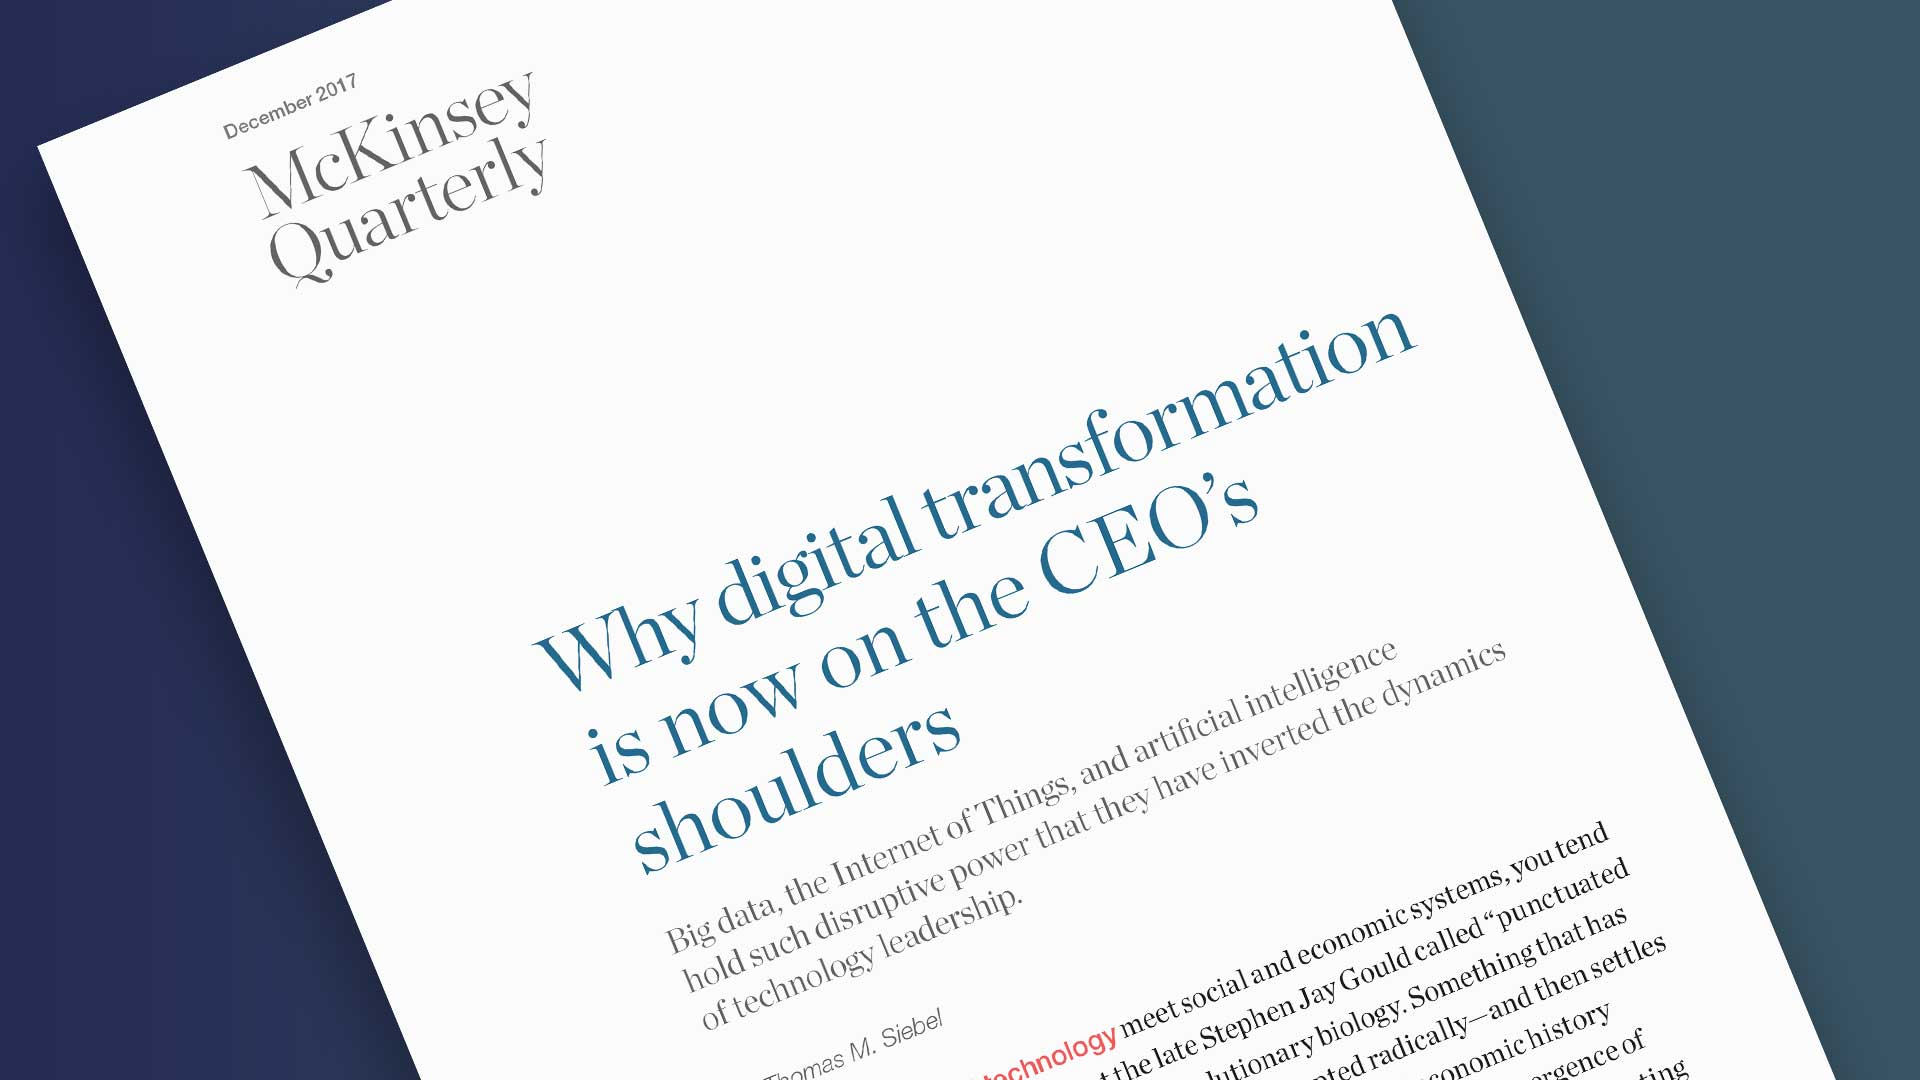 Digital Transformation McKinsey Report